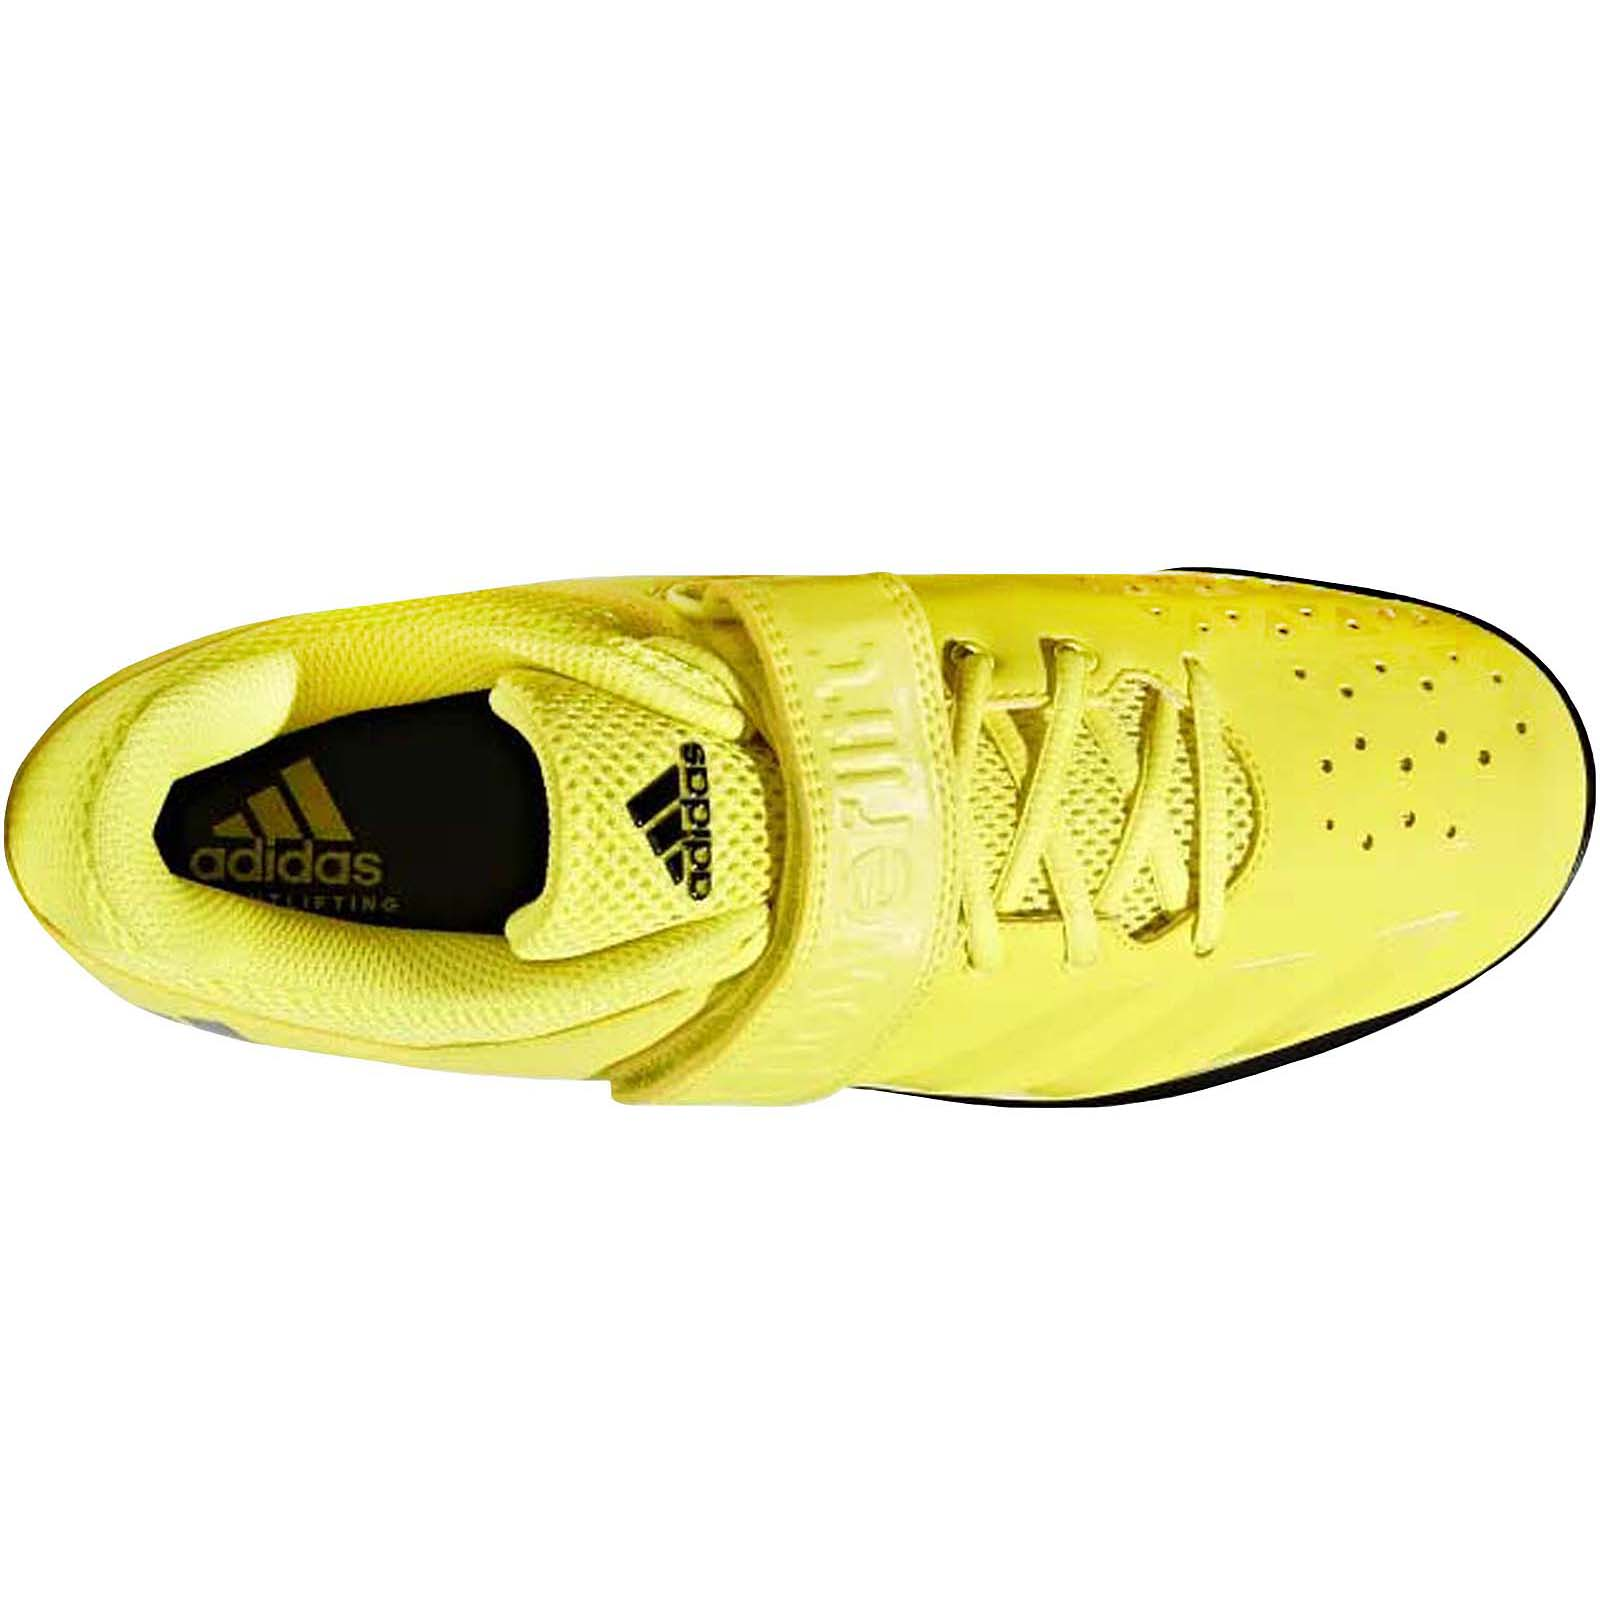 adidas-Performance-Mens-Powerlift-3-1-Weightlifting-Training-Trainers-Shoes thumbnail 15